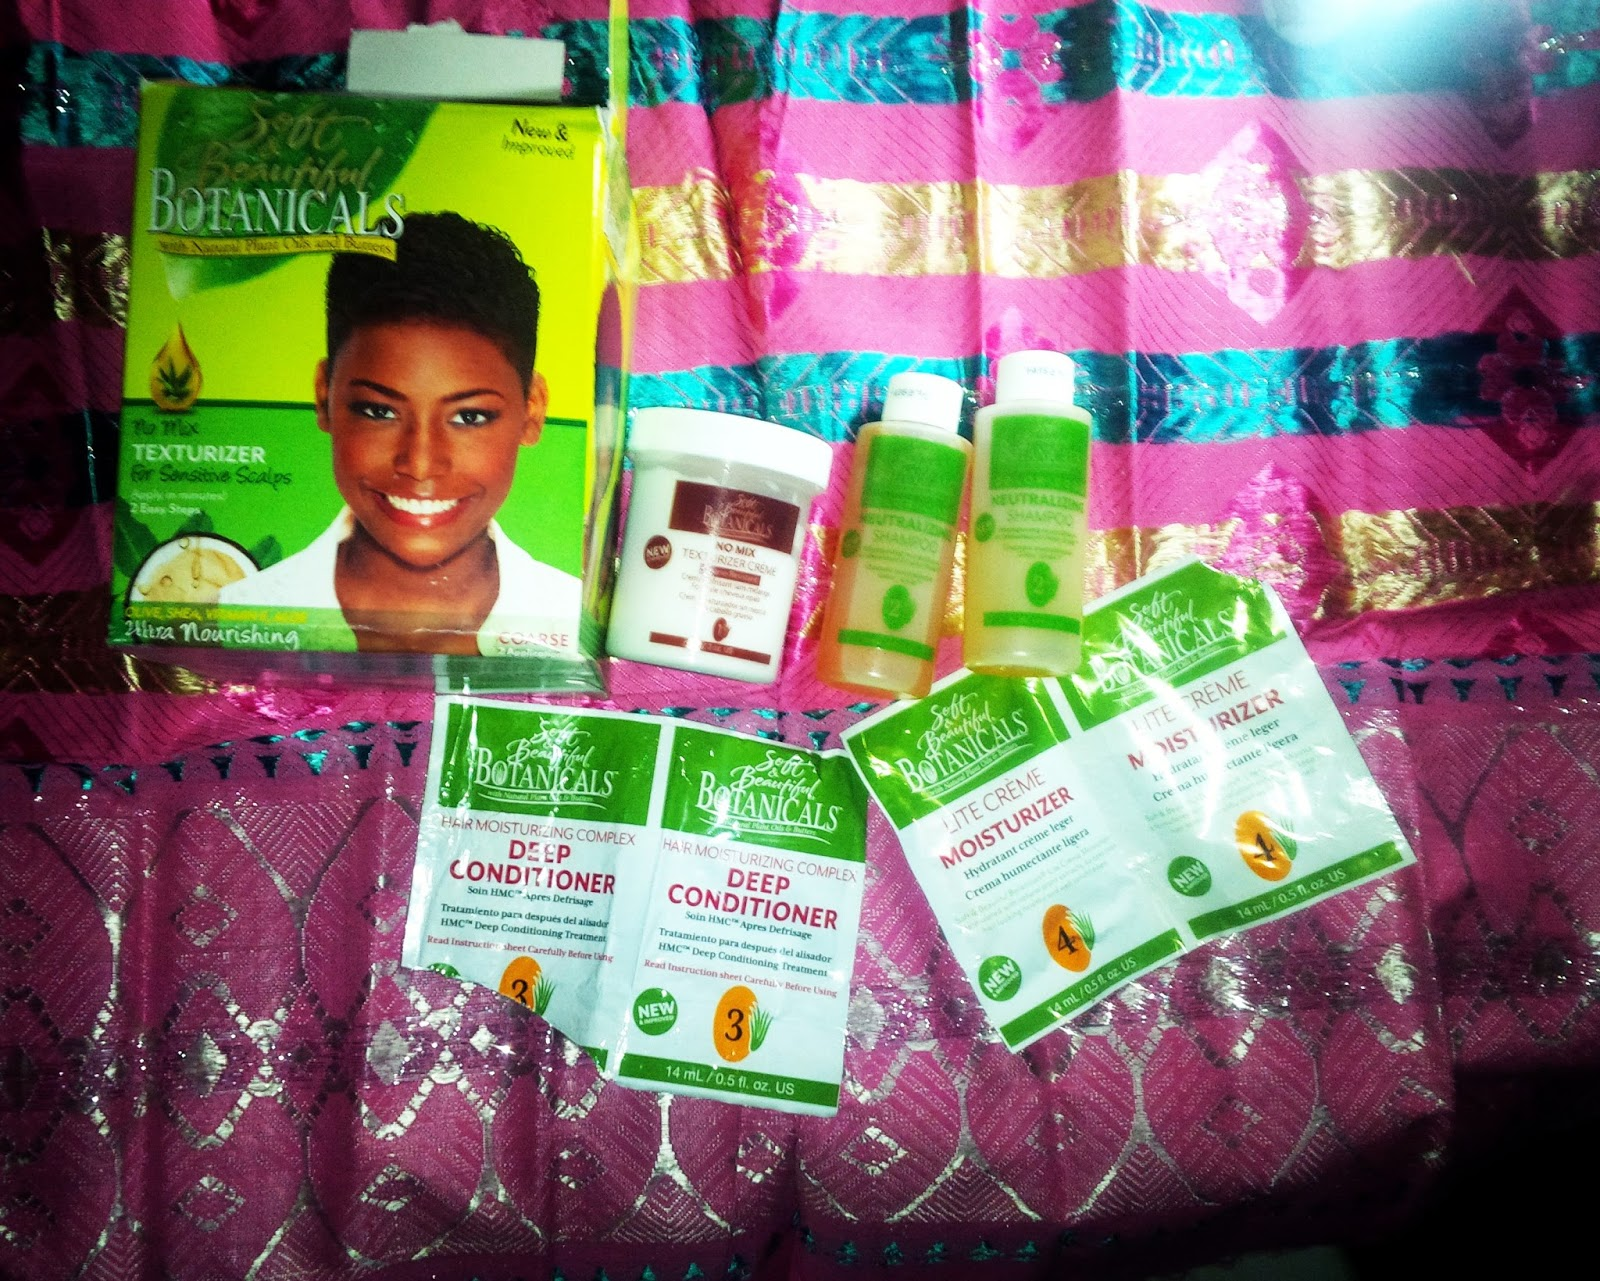 SOFT AND BEAUTIFUL BOTANICALS TEXTURIZER IN COARSE REVIEW ...